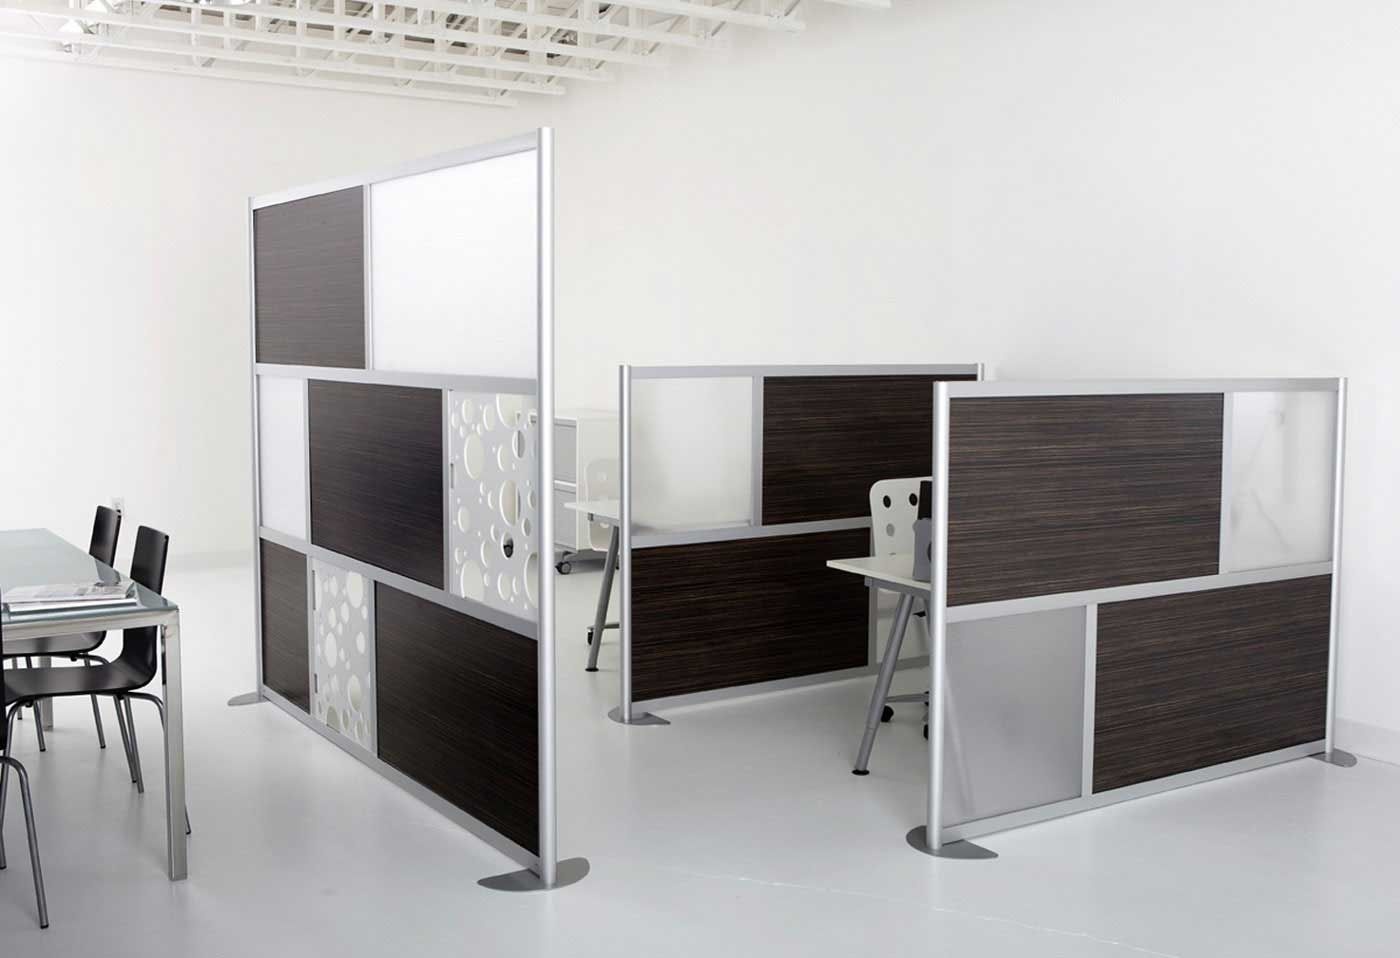 sound proof free standing wall divider - Google Search | Office ...